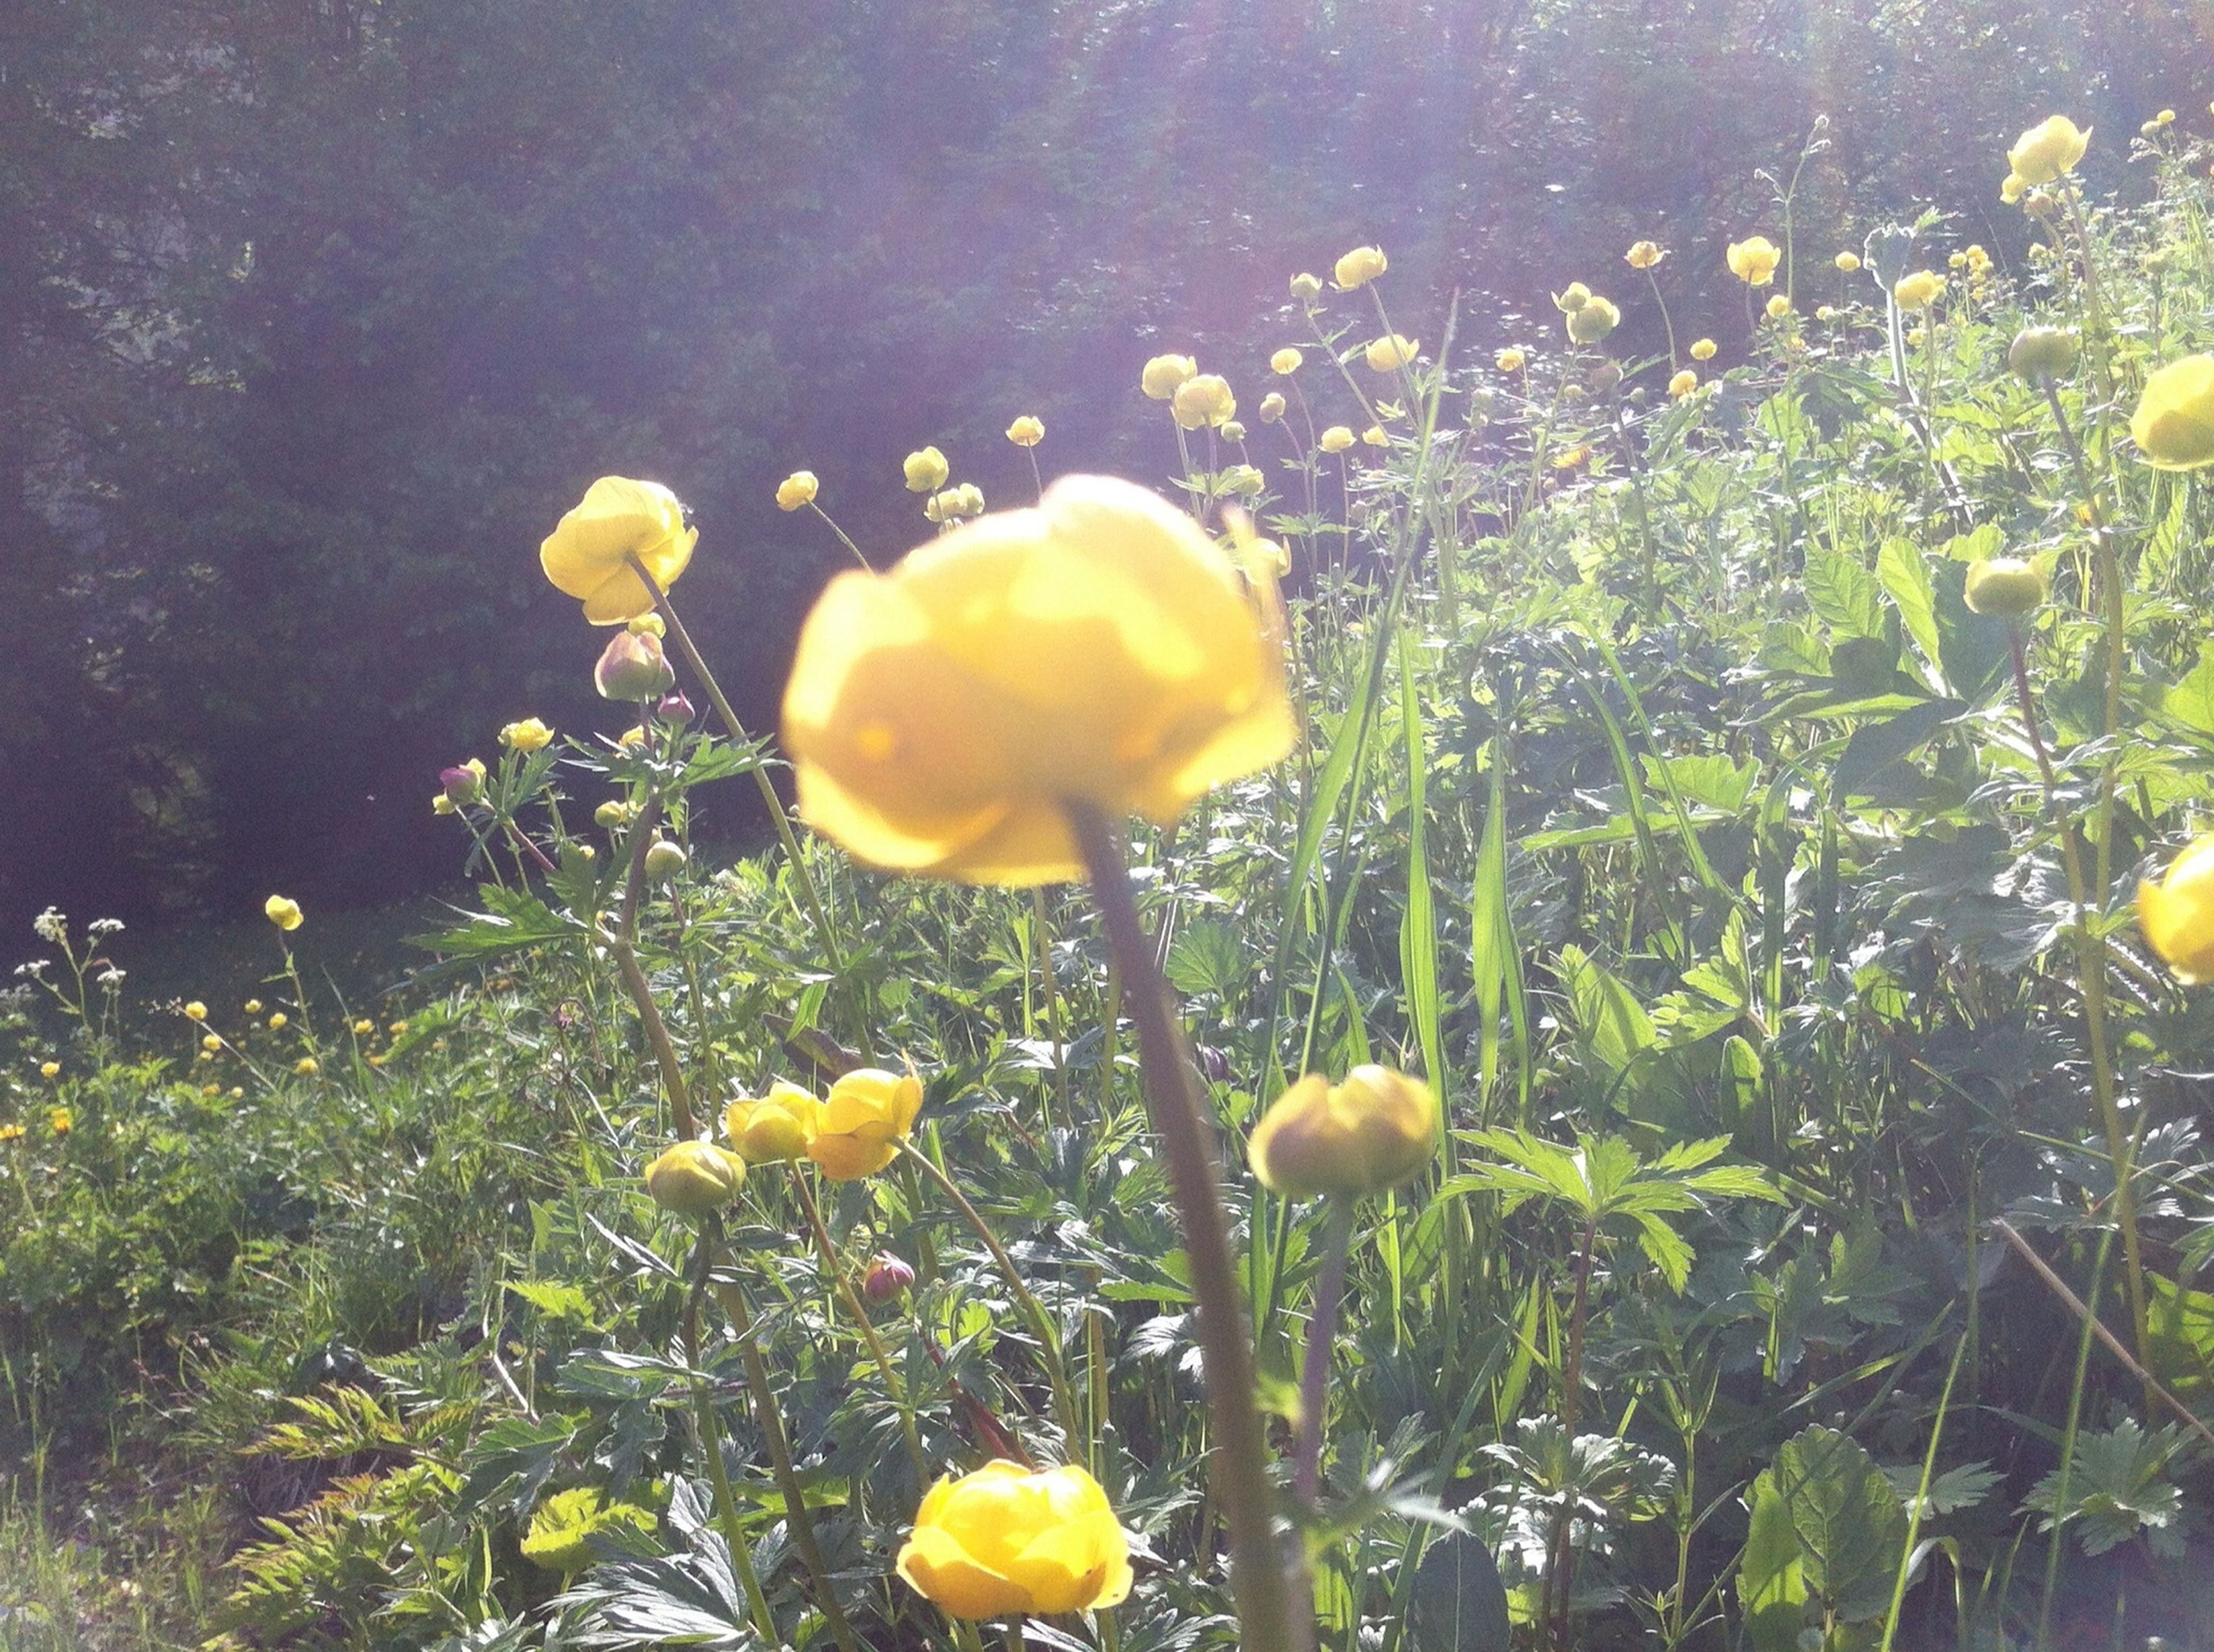 flower, growth, freshness, yellow, fragility, beauty in nature, nature, plant, petal, flower head, growing, field, blooming, close-up, mushroom, fungus, uncultivated, stem, day, no people